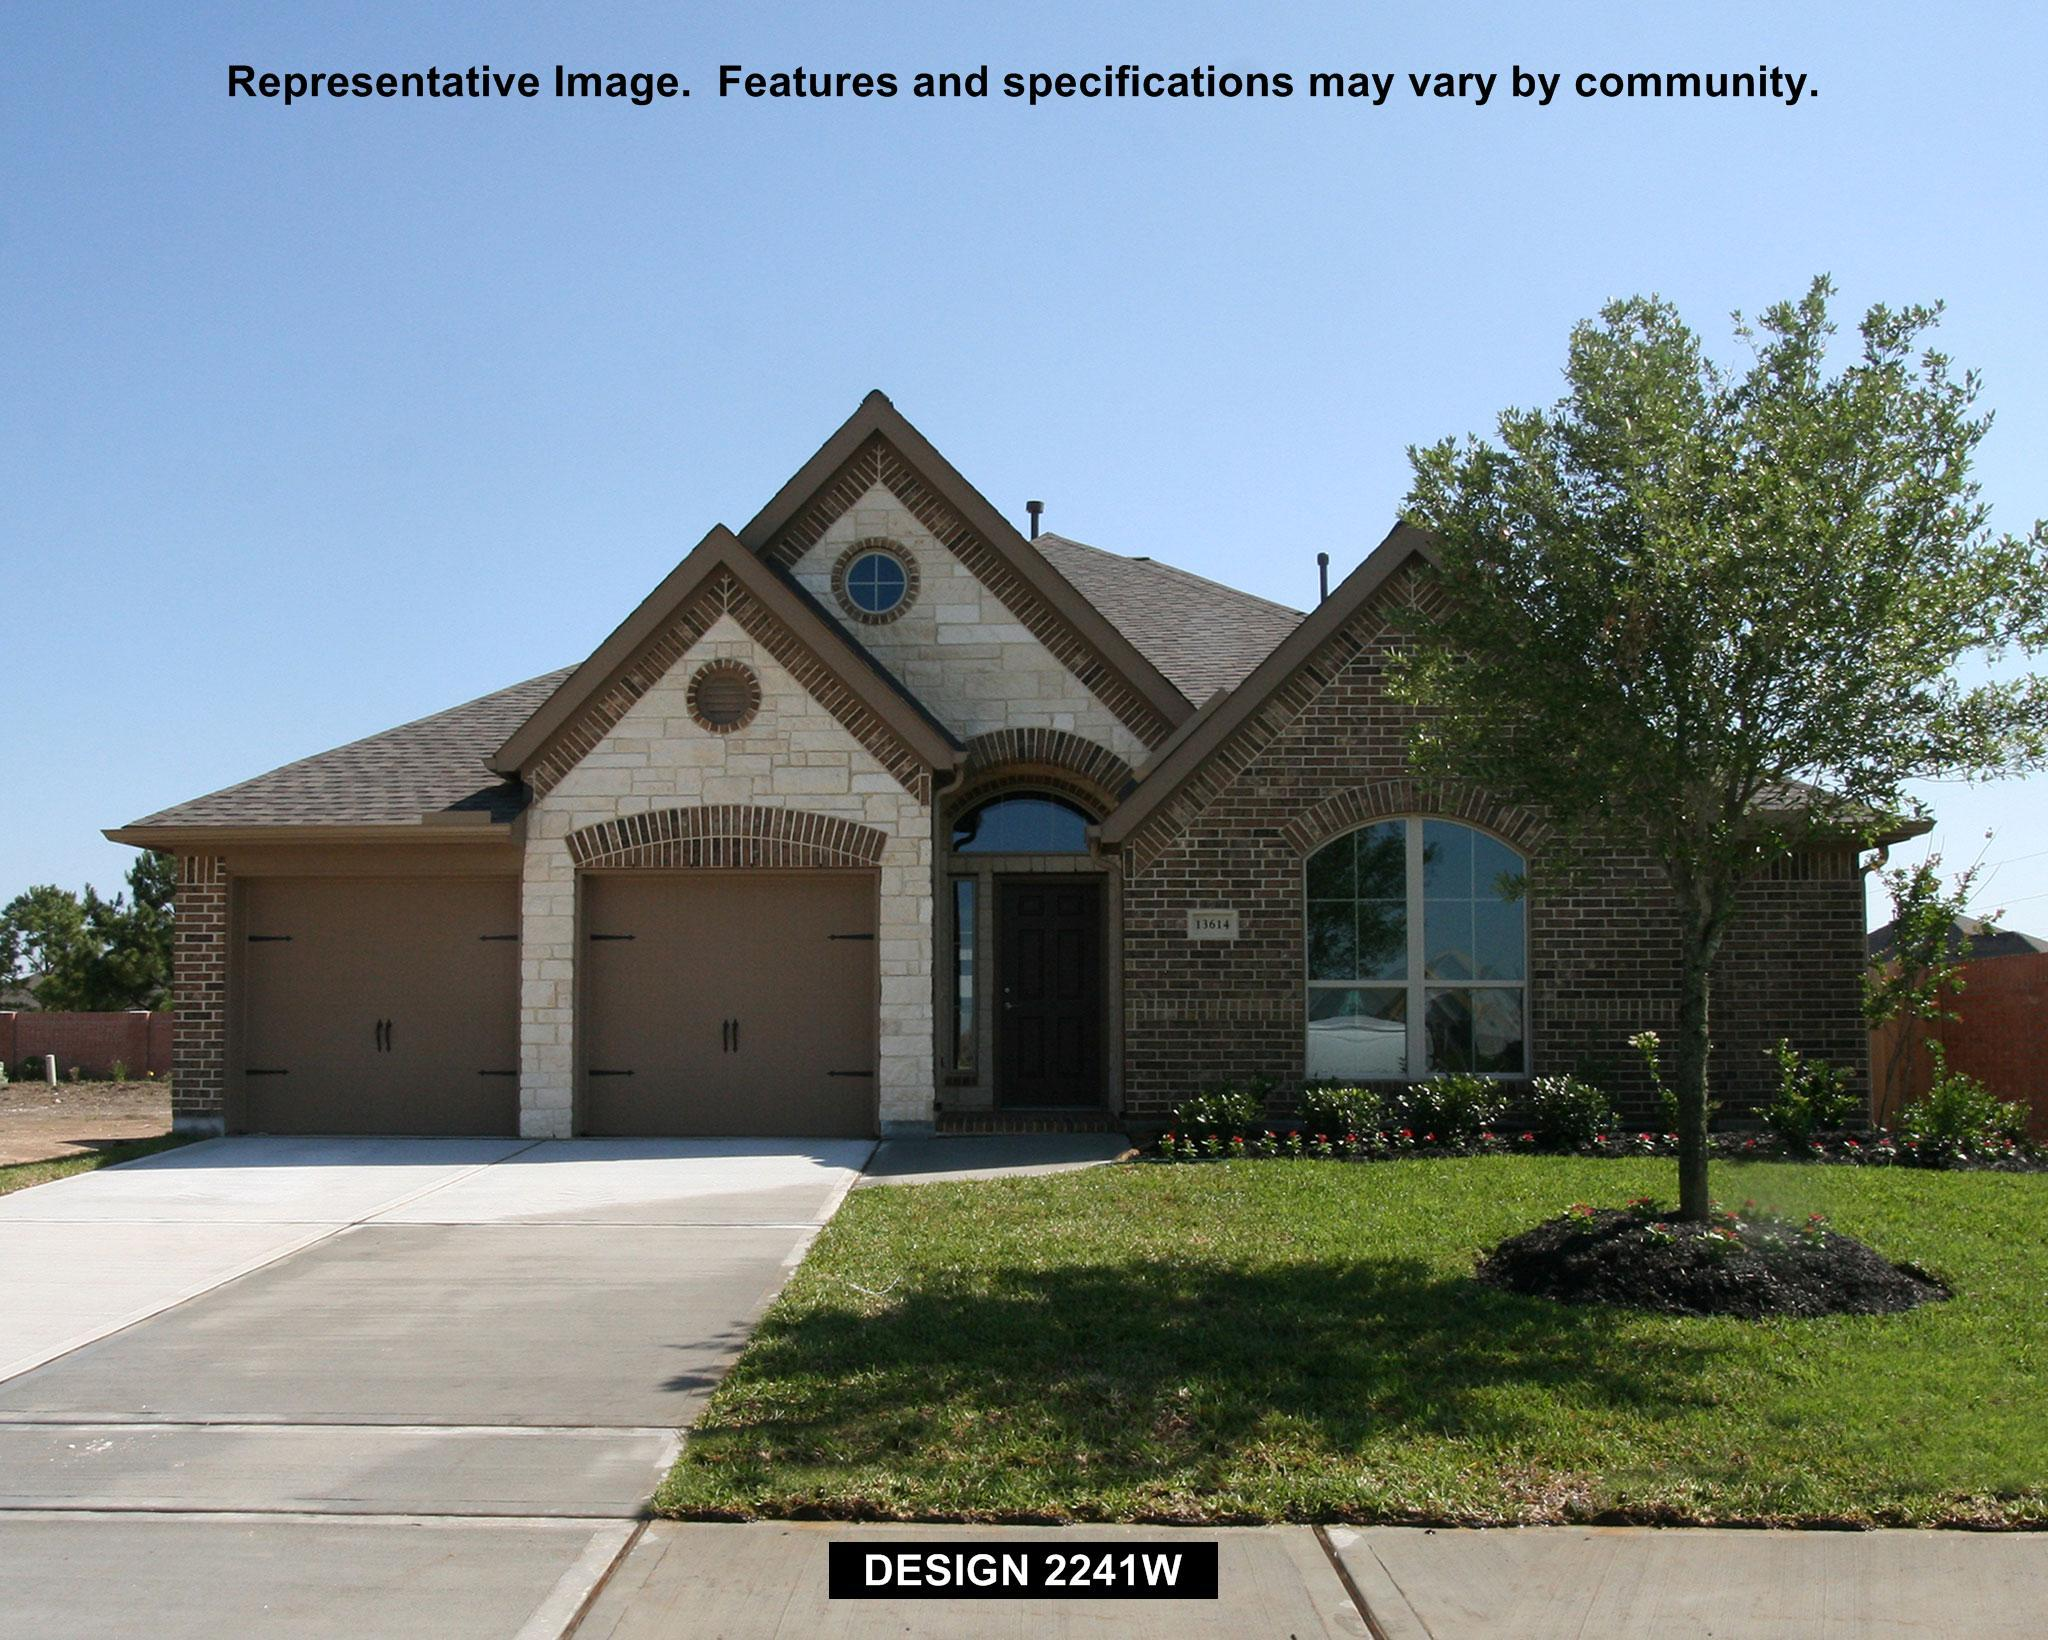 2241W - Riverstone 55': Sugar Land, TX - Perry Homes